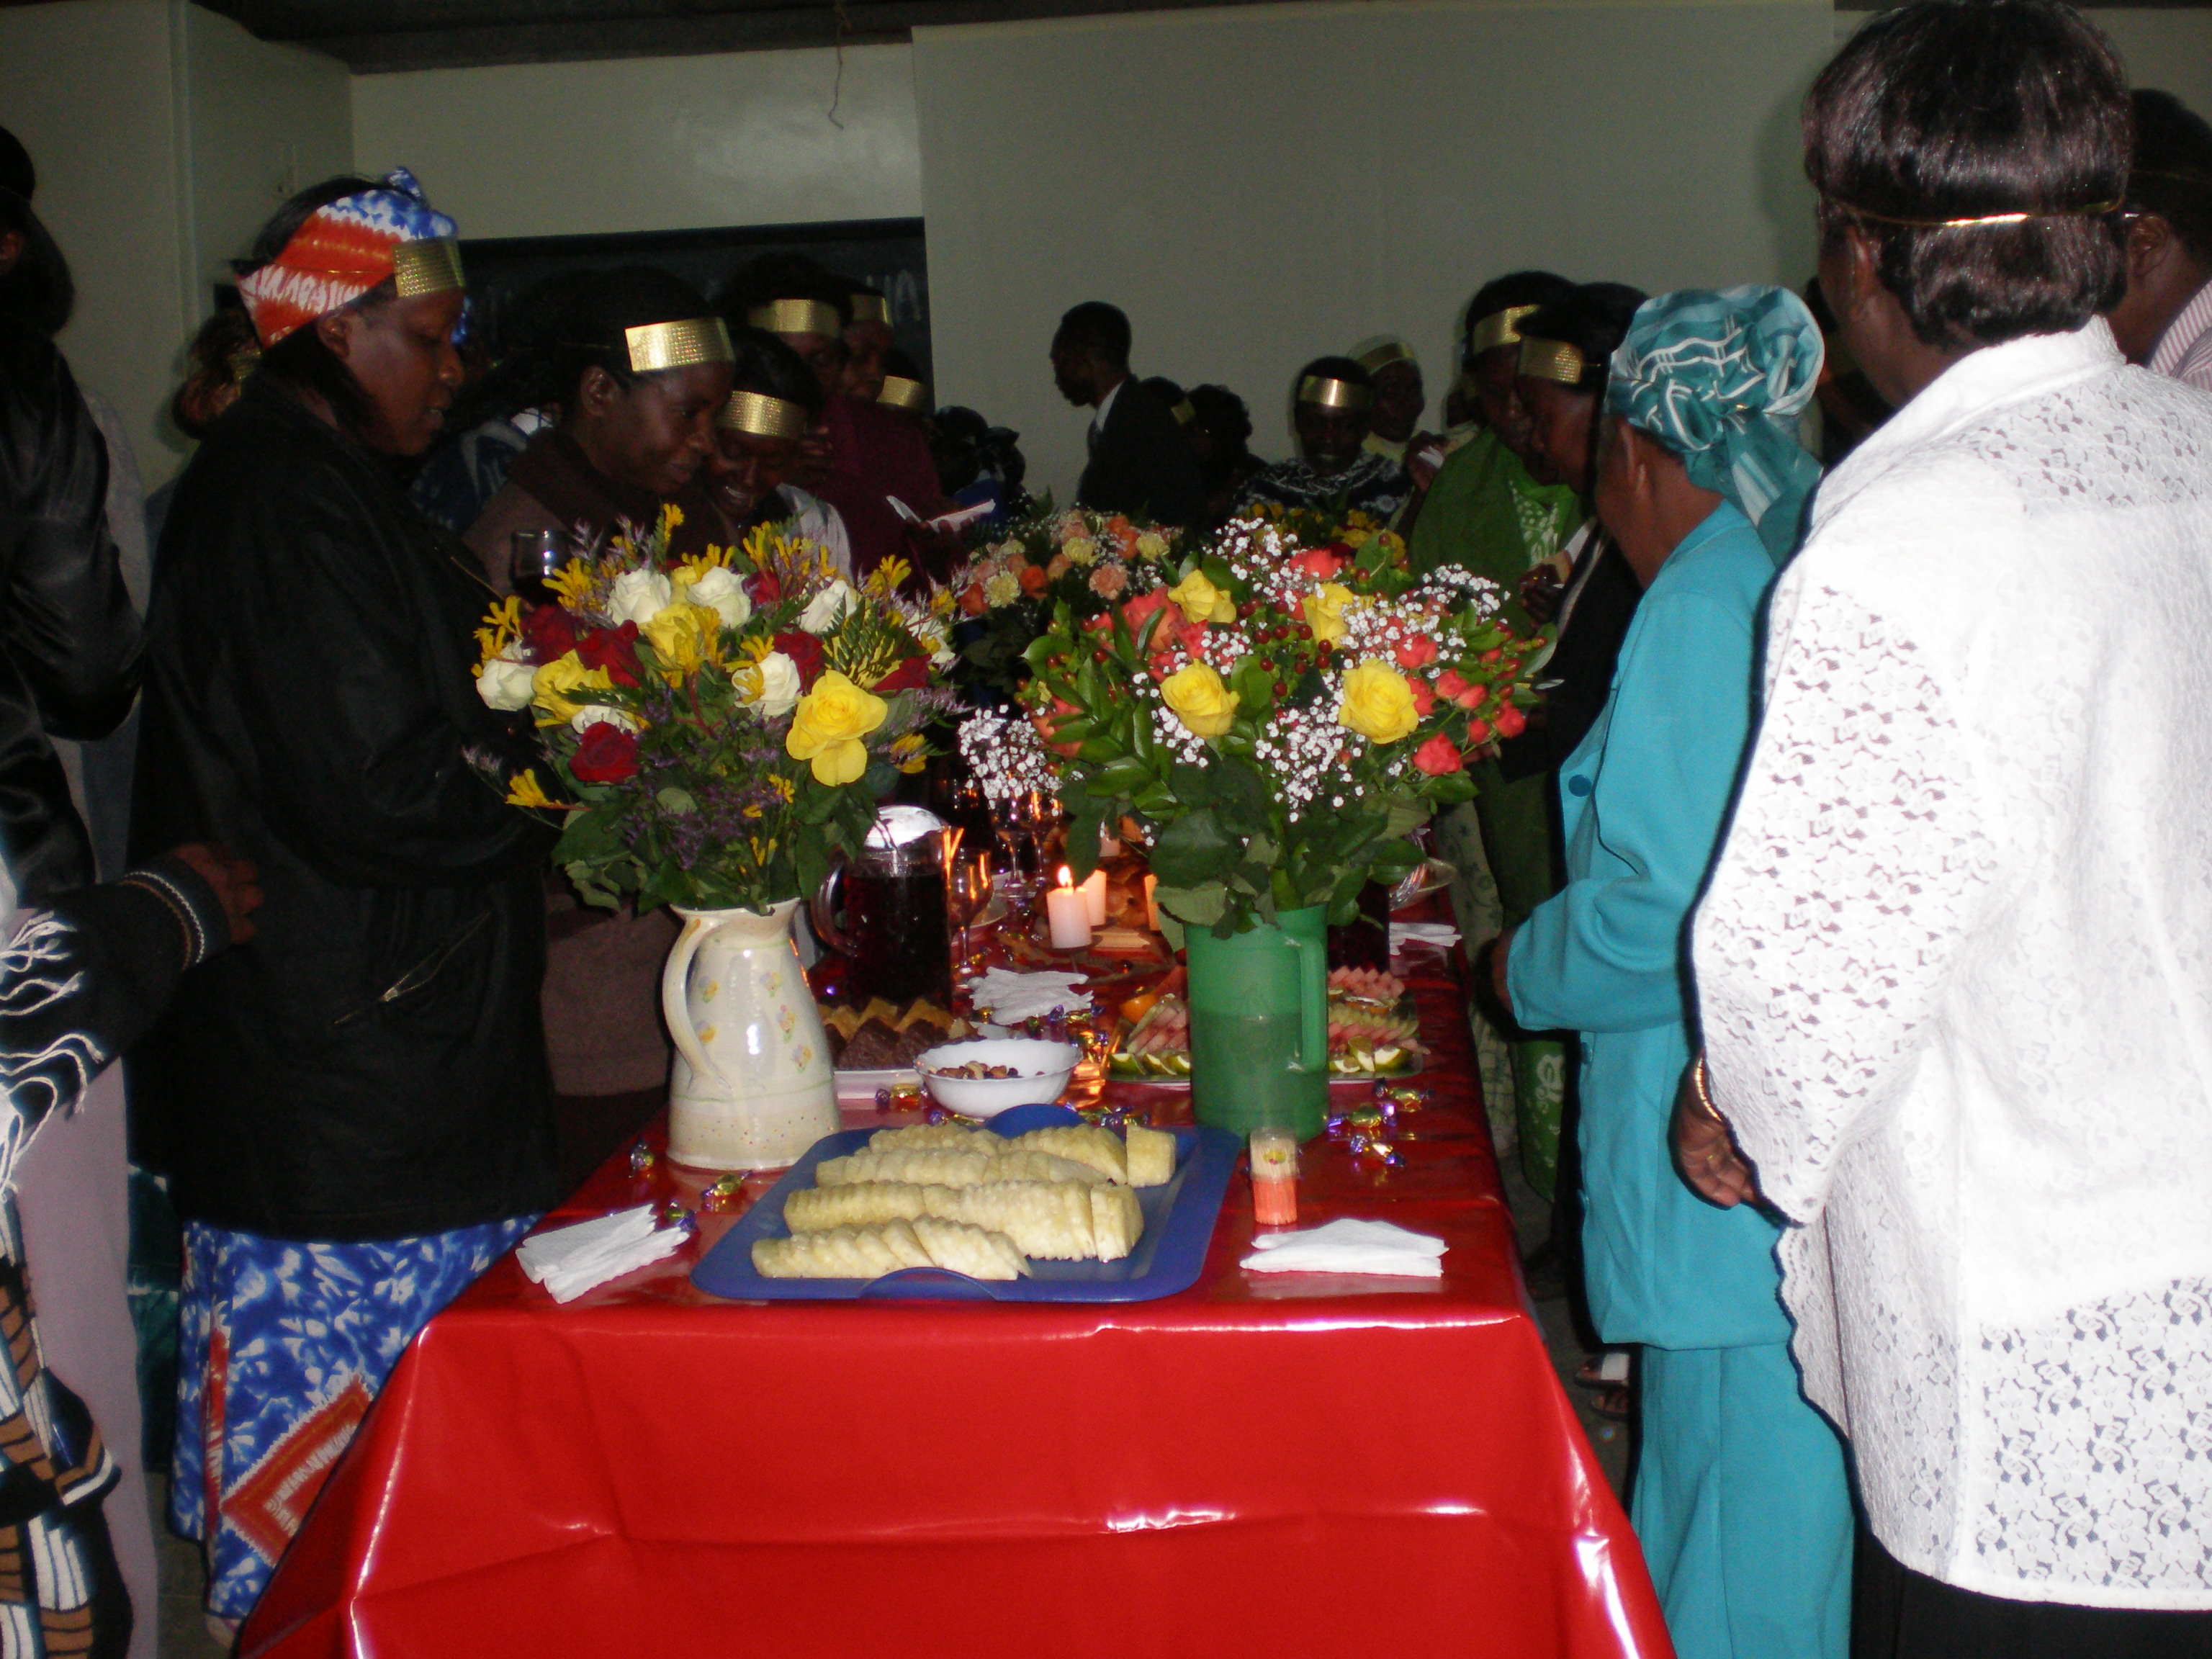 Blessing and Honouring One Another at the King's Table